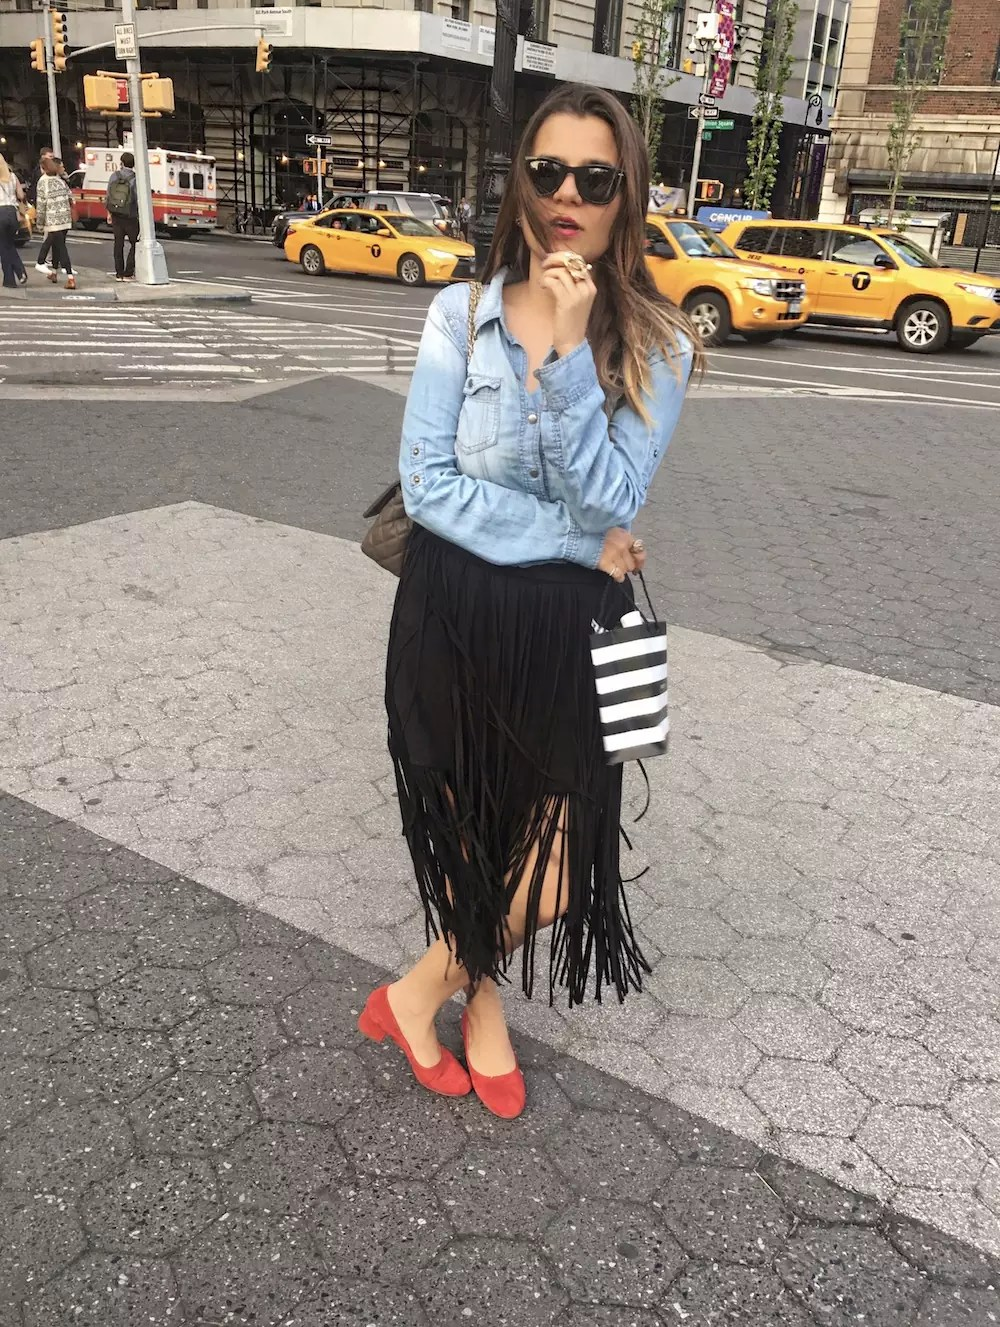 fringe-skirts-red-shoes-and-denim-shirt-alley-girl-new-york-fashion-blogger-betul-yildiz